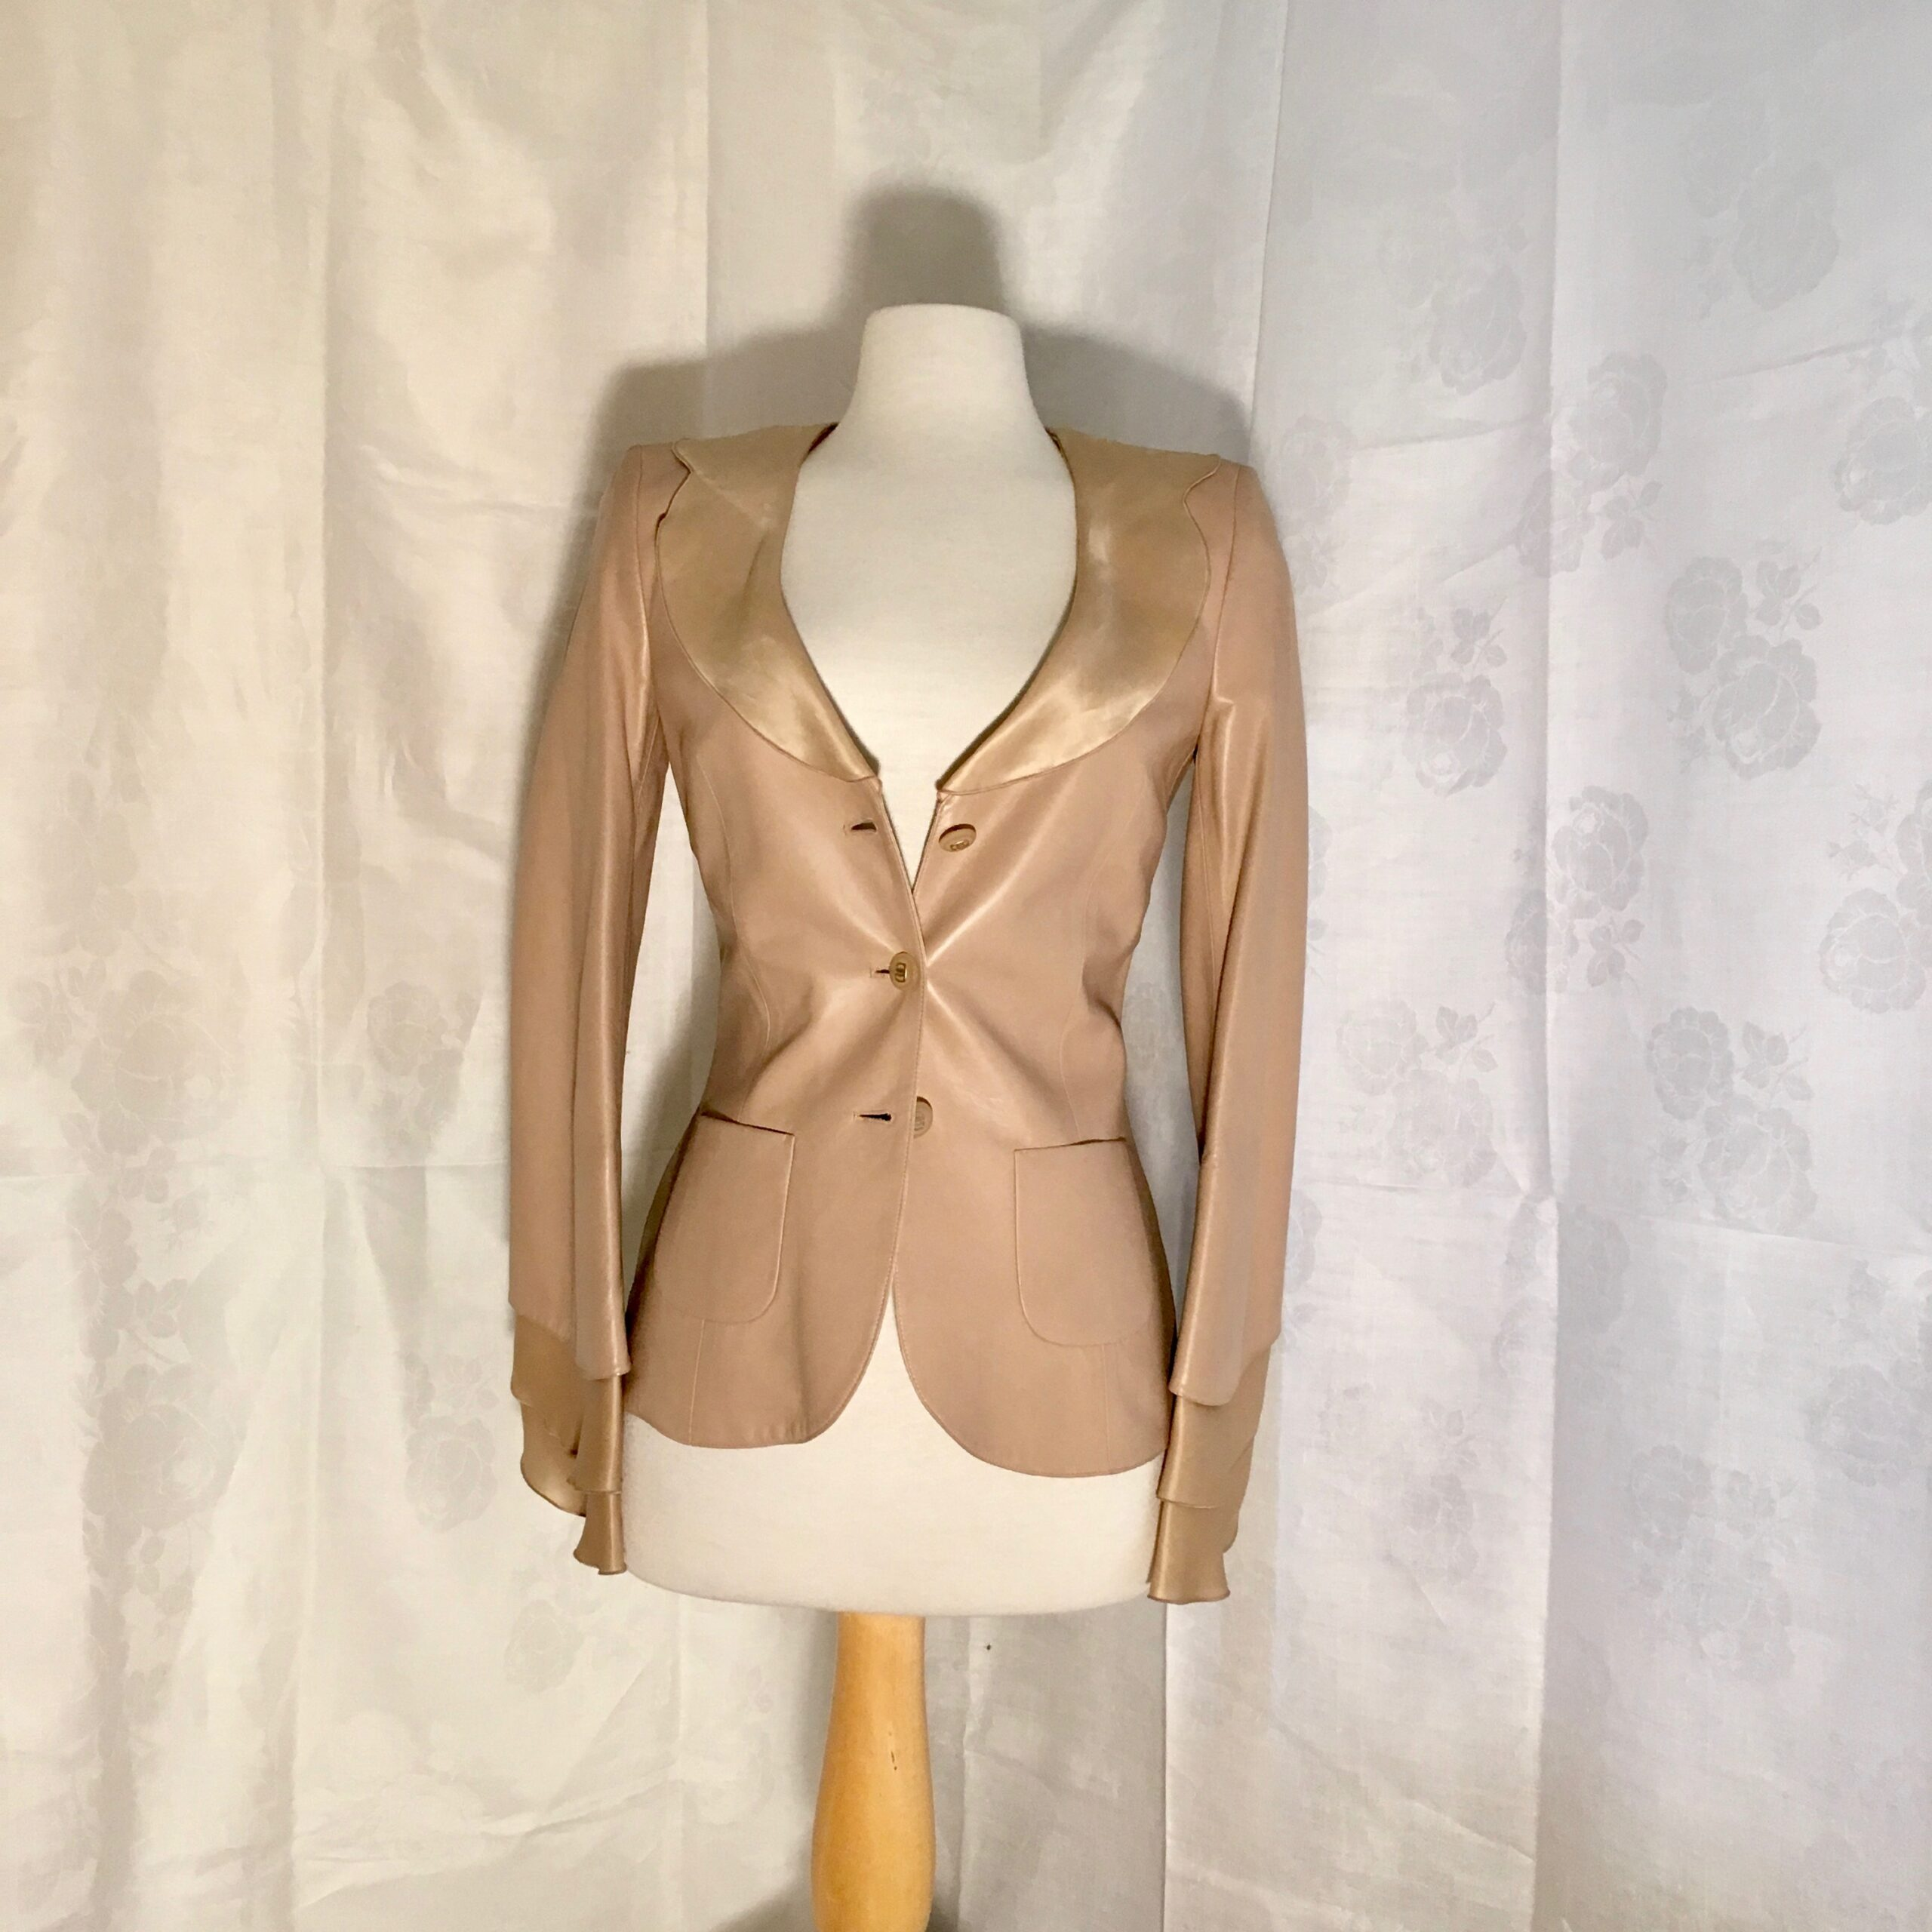 Ferragamo Leather Jacket